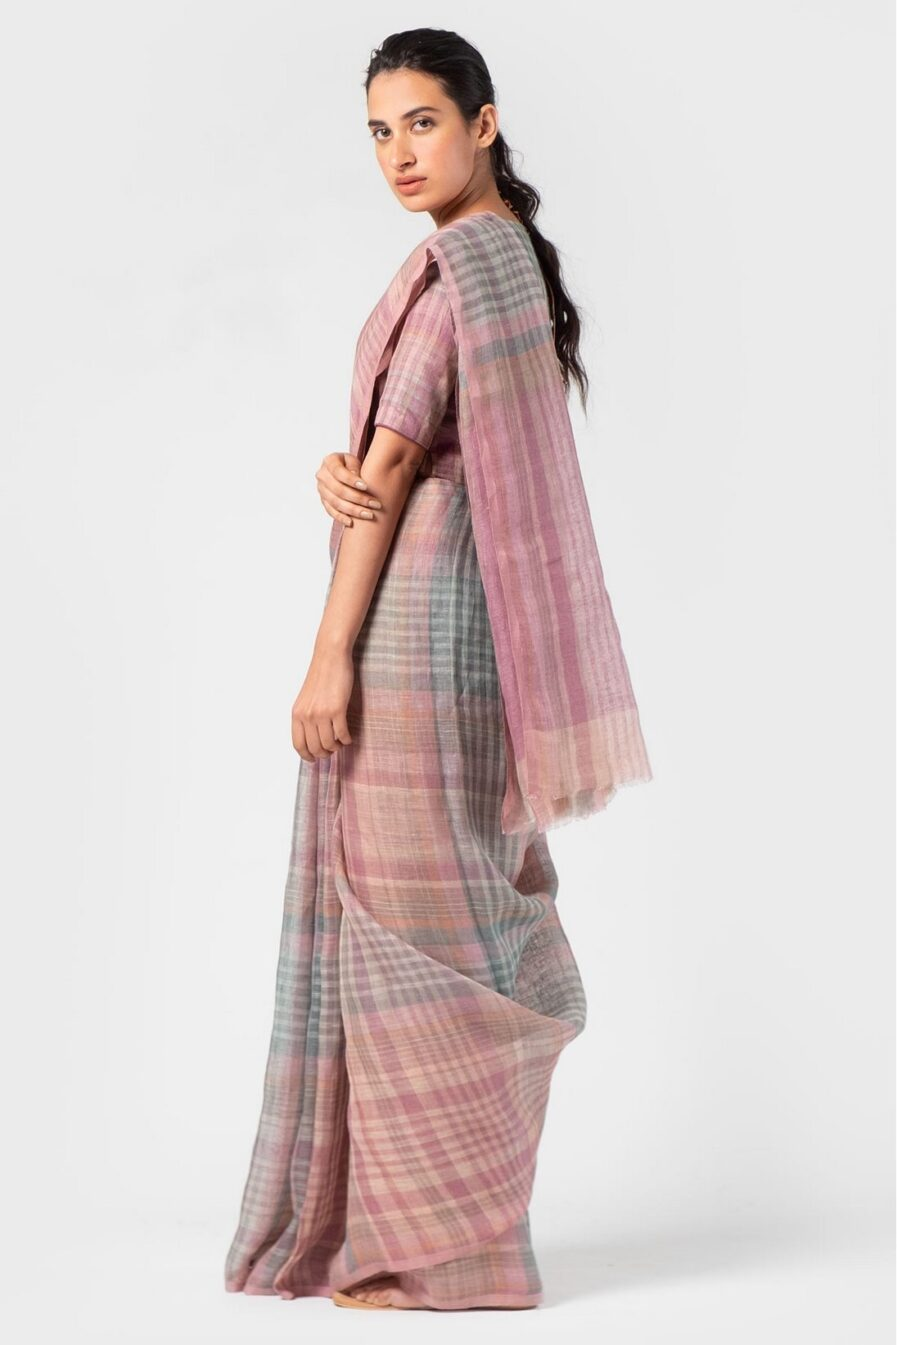 Anavila Mulberry multi plaid sari